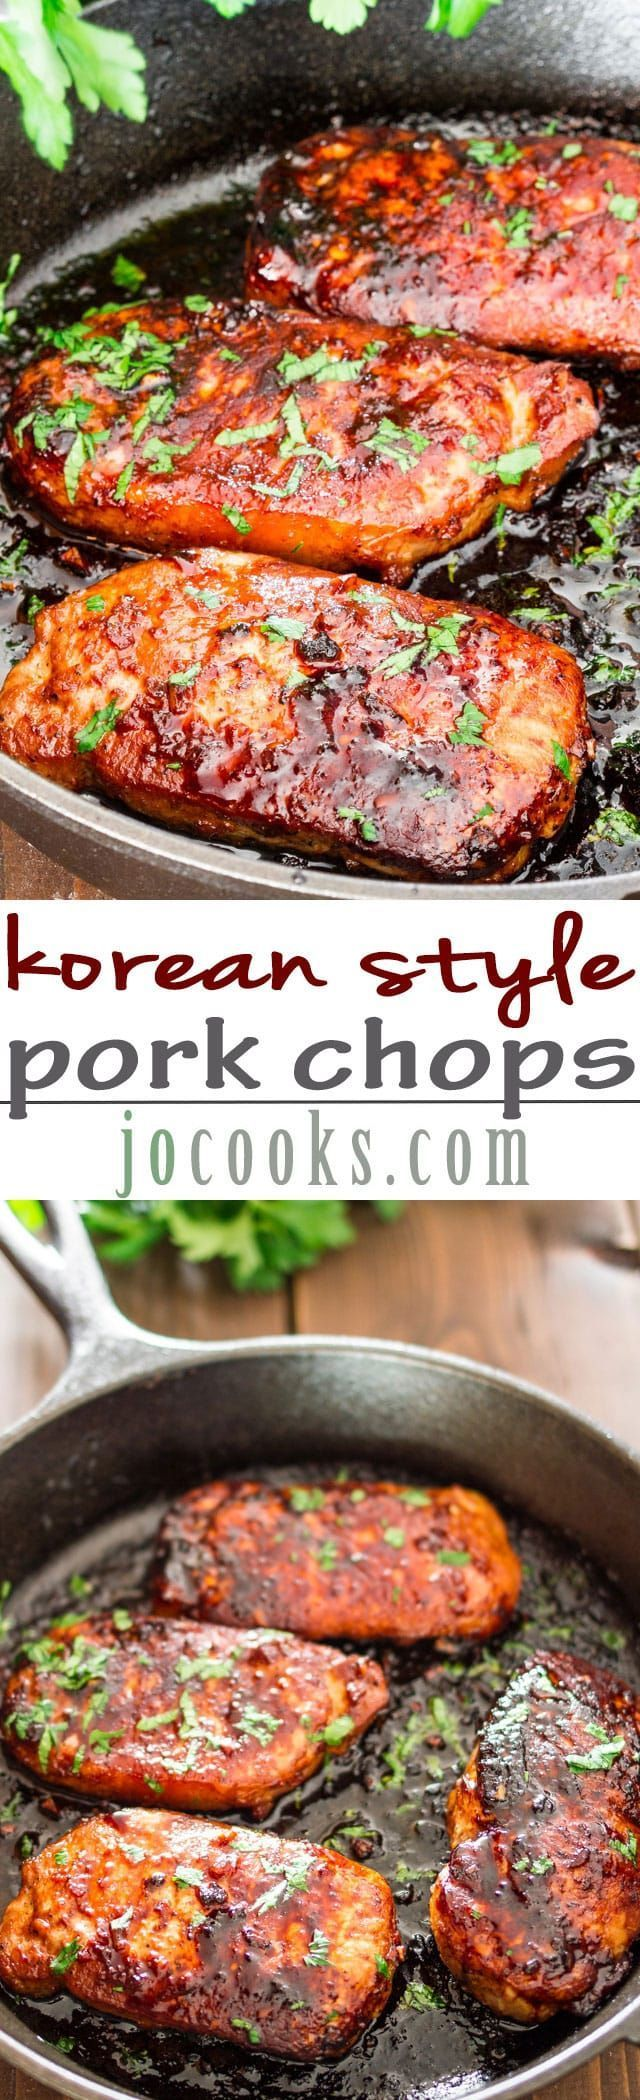 Korean Style Pork Chops – a simple recipe for marinated pork chop … –  #Chop #chops #korean…